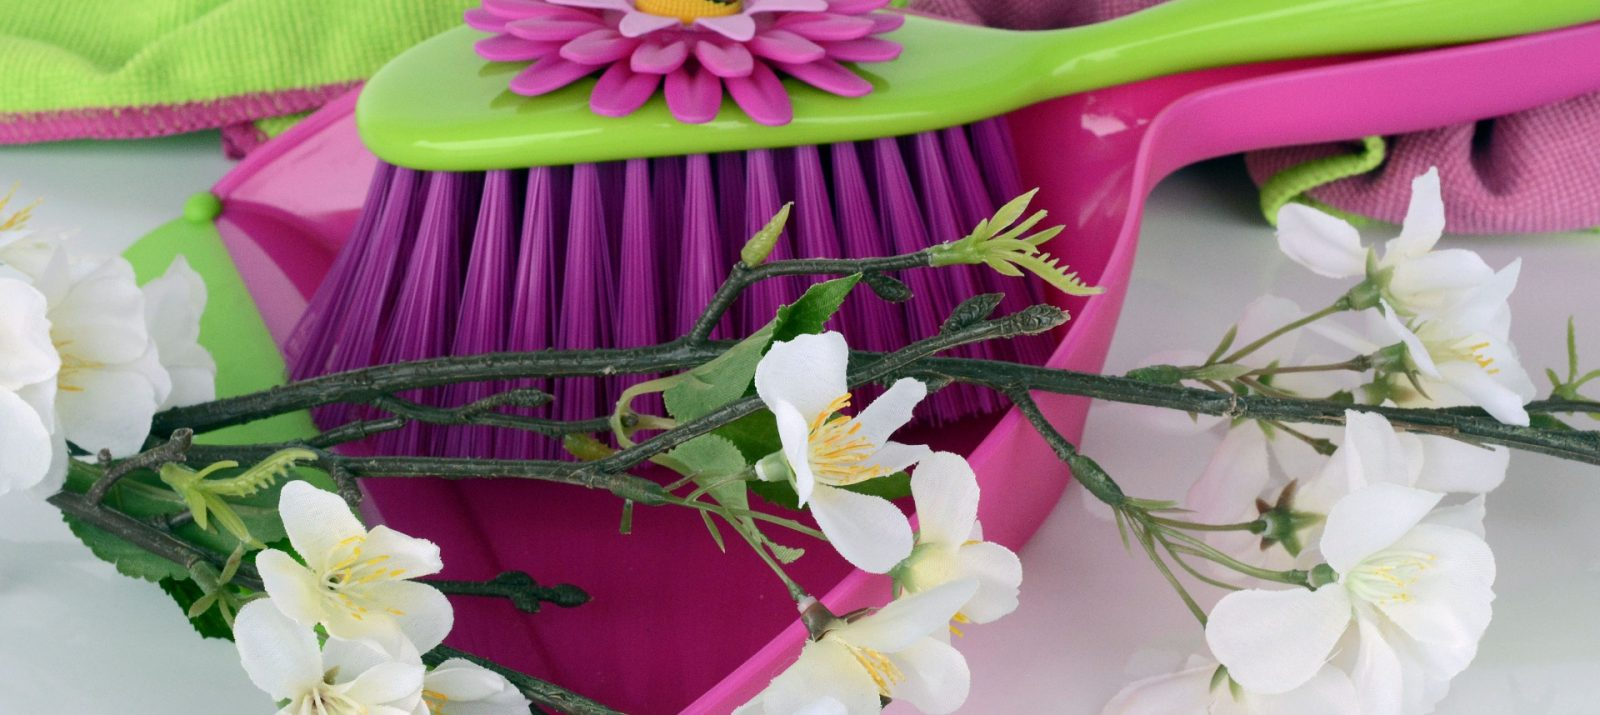 green cleaning tips and tricks for the home